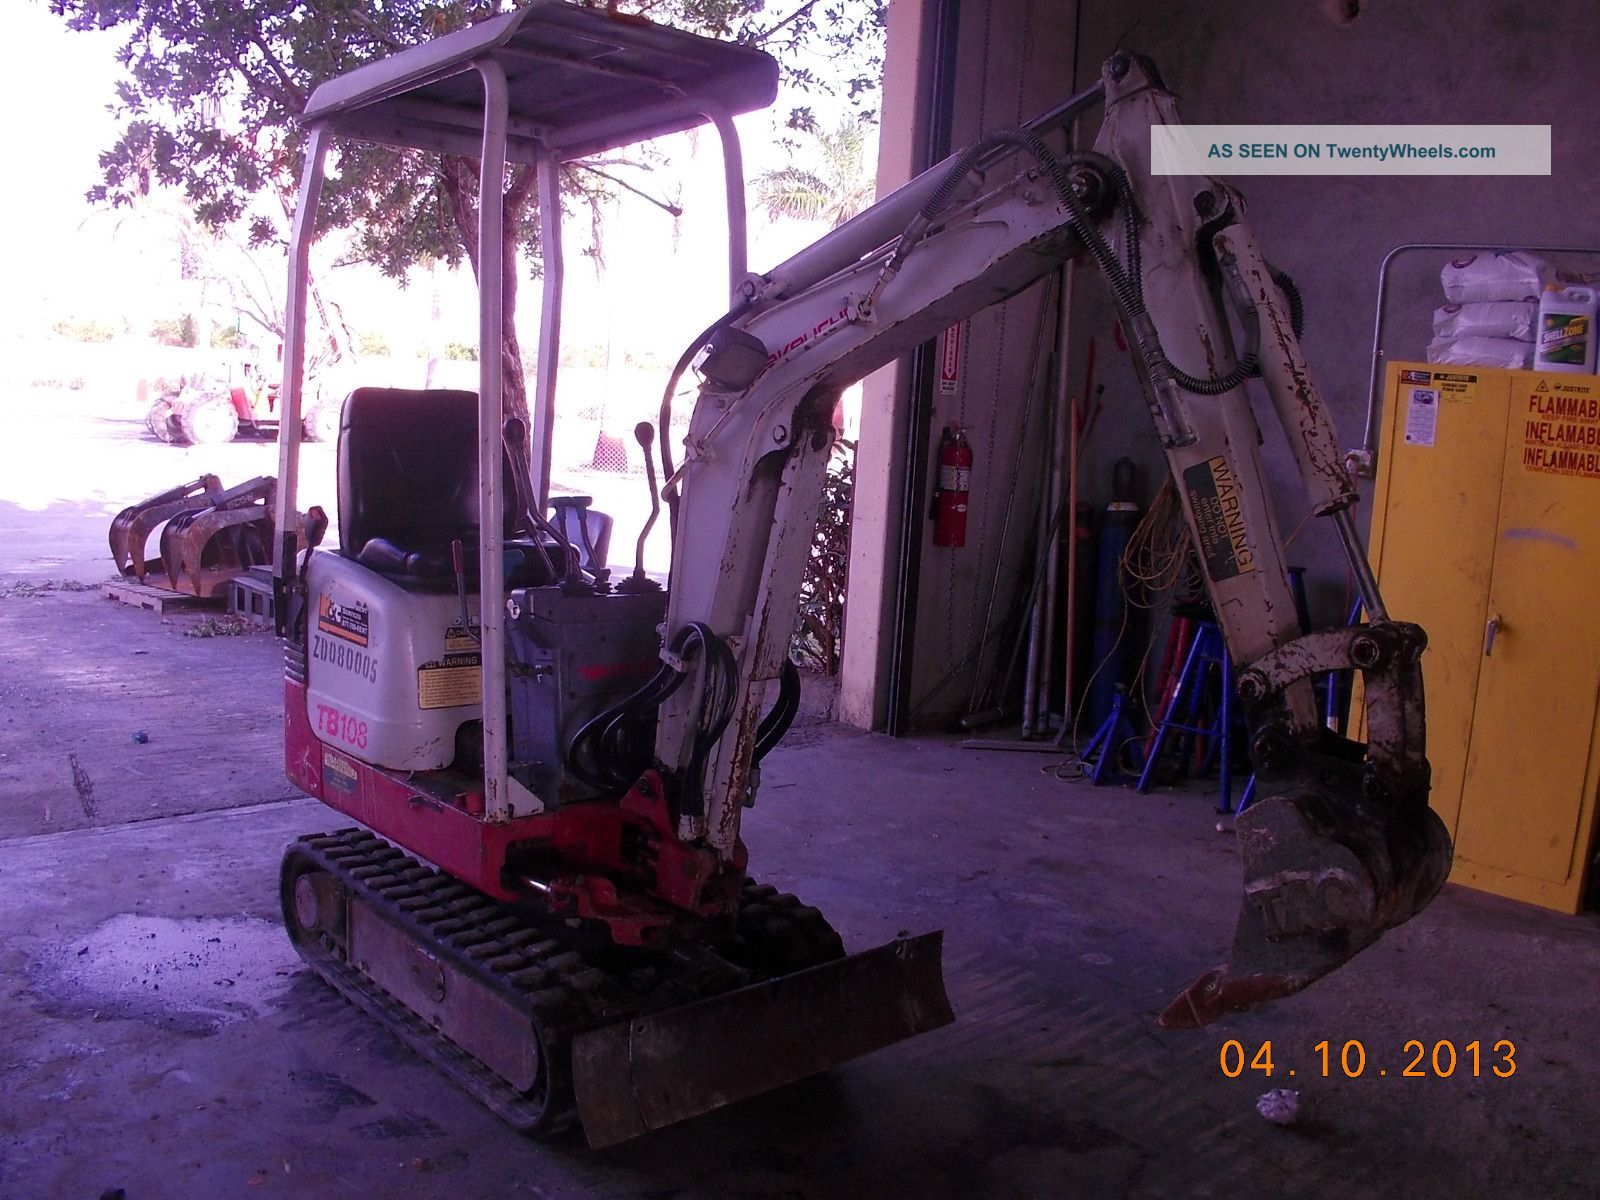 Takeuchi Tb108 Mini Excavator,  Goes Thru 30